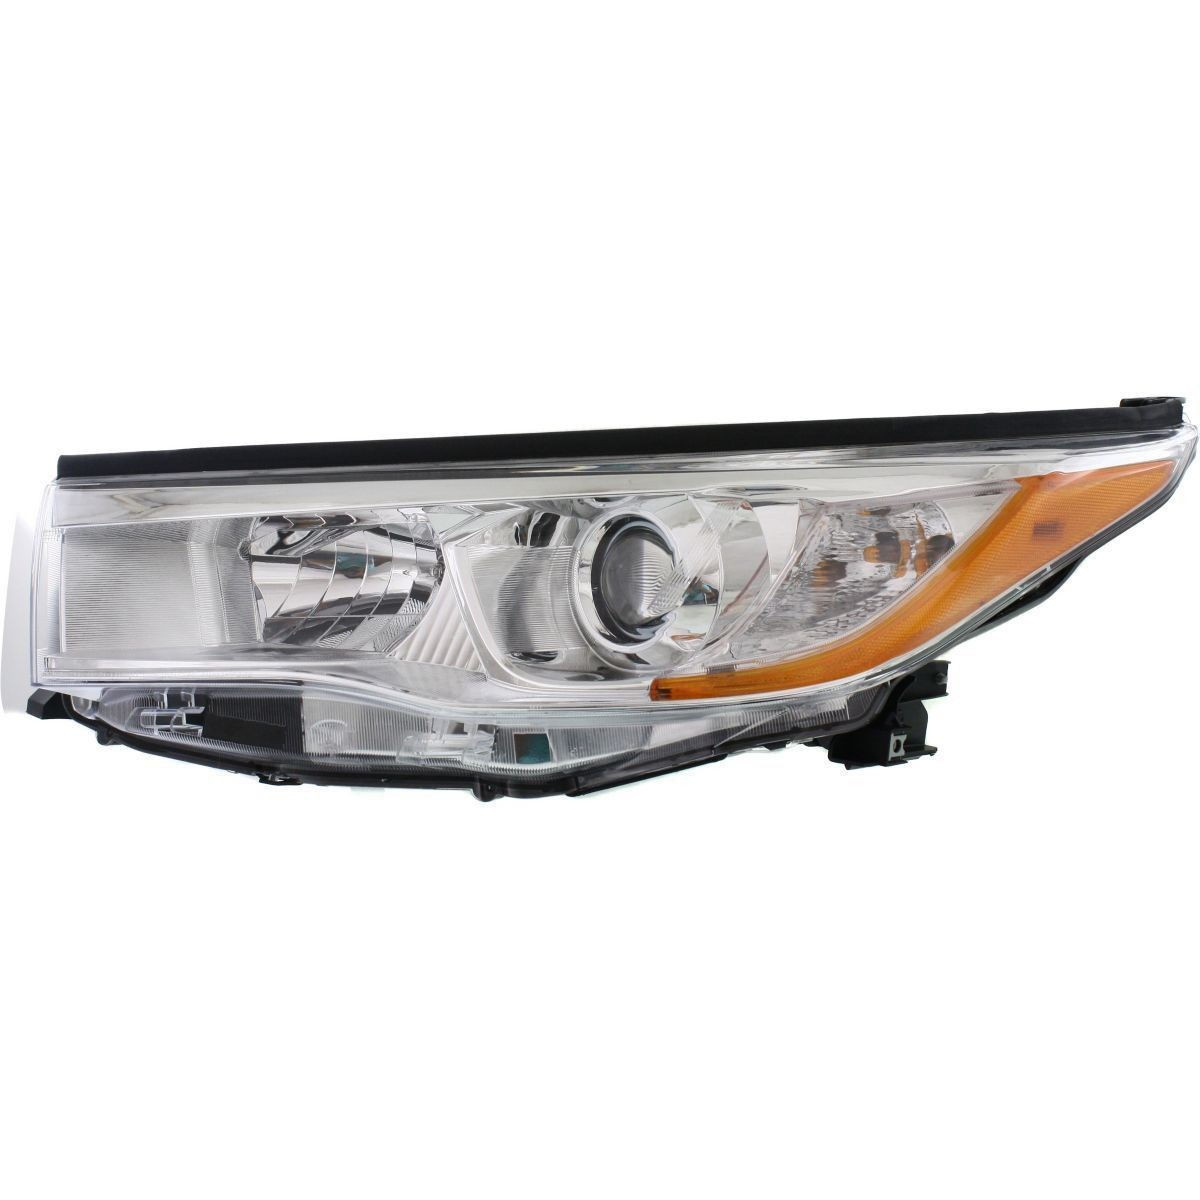 Search Car Parts For Toyota Highlander Partscargo Hybrid Headlamp Assembly Diagram New 2014 2016 Fits Headlight Left Side To2502221